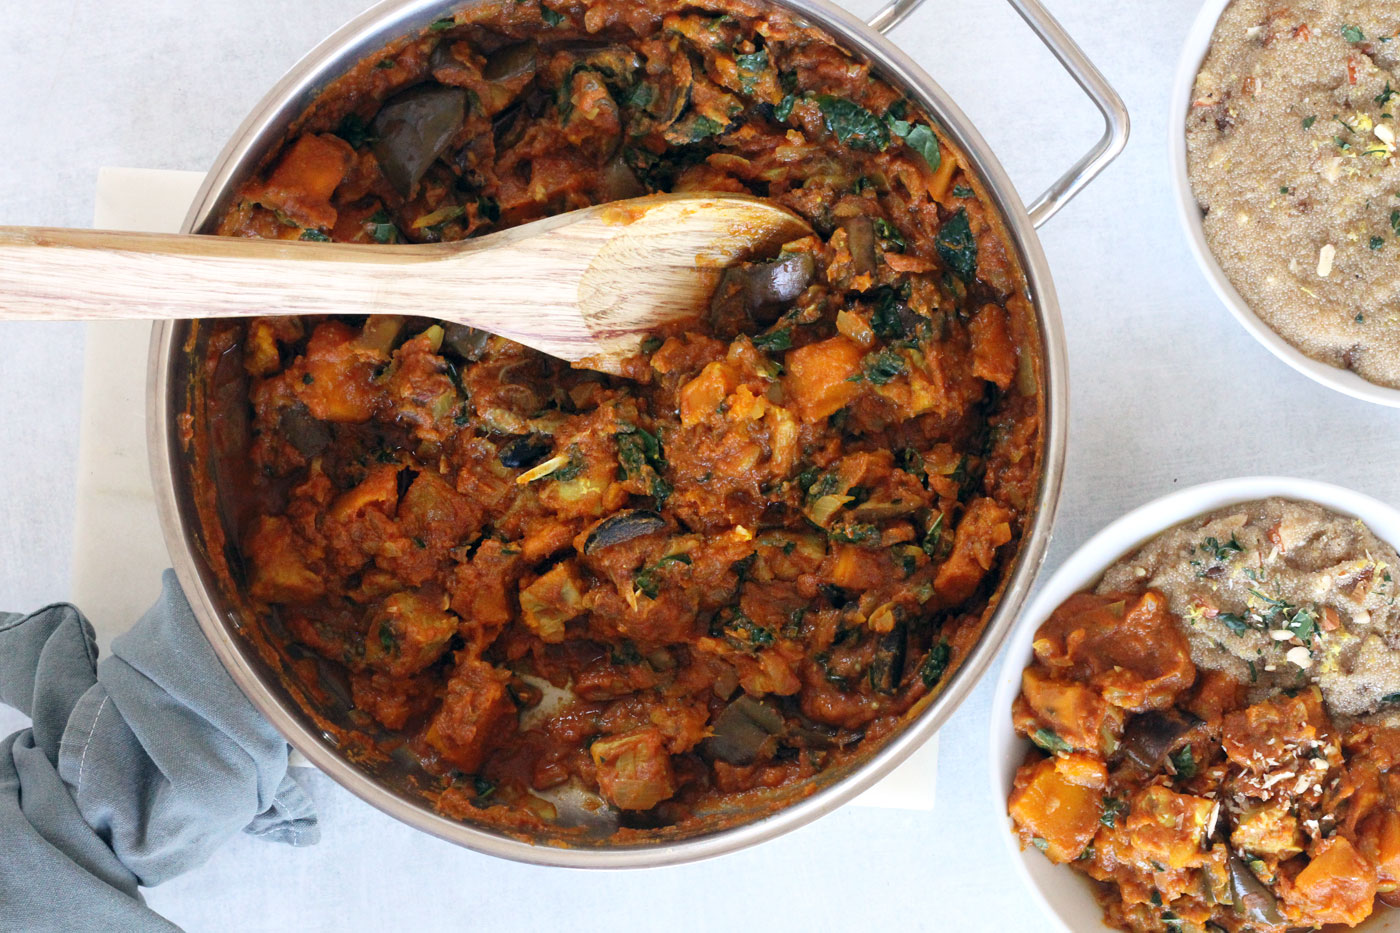 Moroccan spiced vegetable and tempeh stew with lemon made by Active Vegetarian